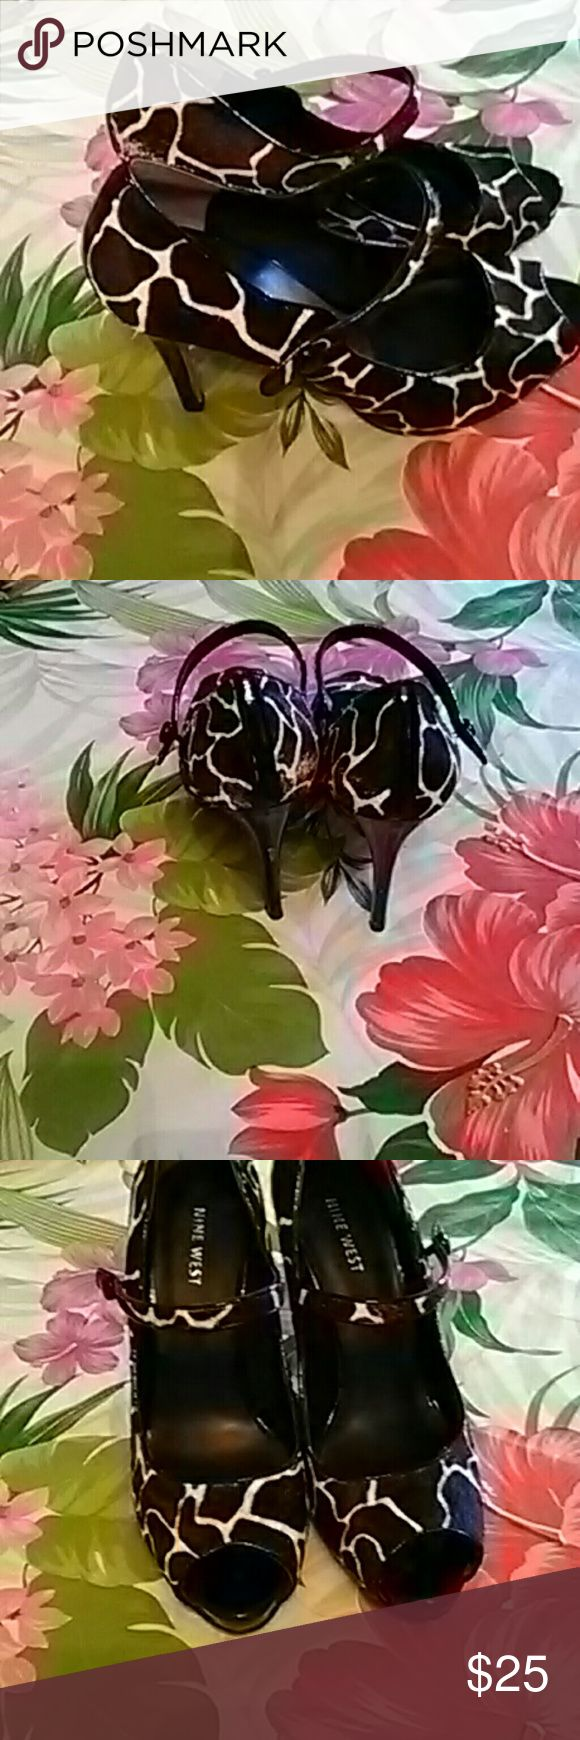 Shoe This is a high heel shoe for dress to anywhere office work party. Very  beautiful. Is used but it still bear it name Nine West Nine West Shoes Heels